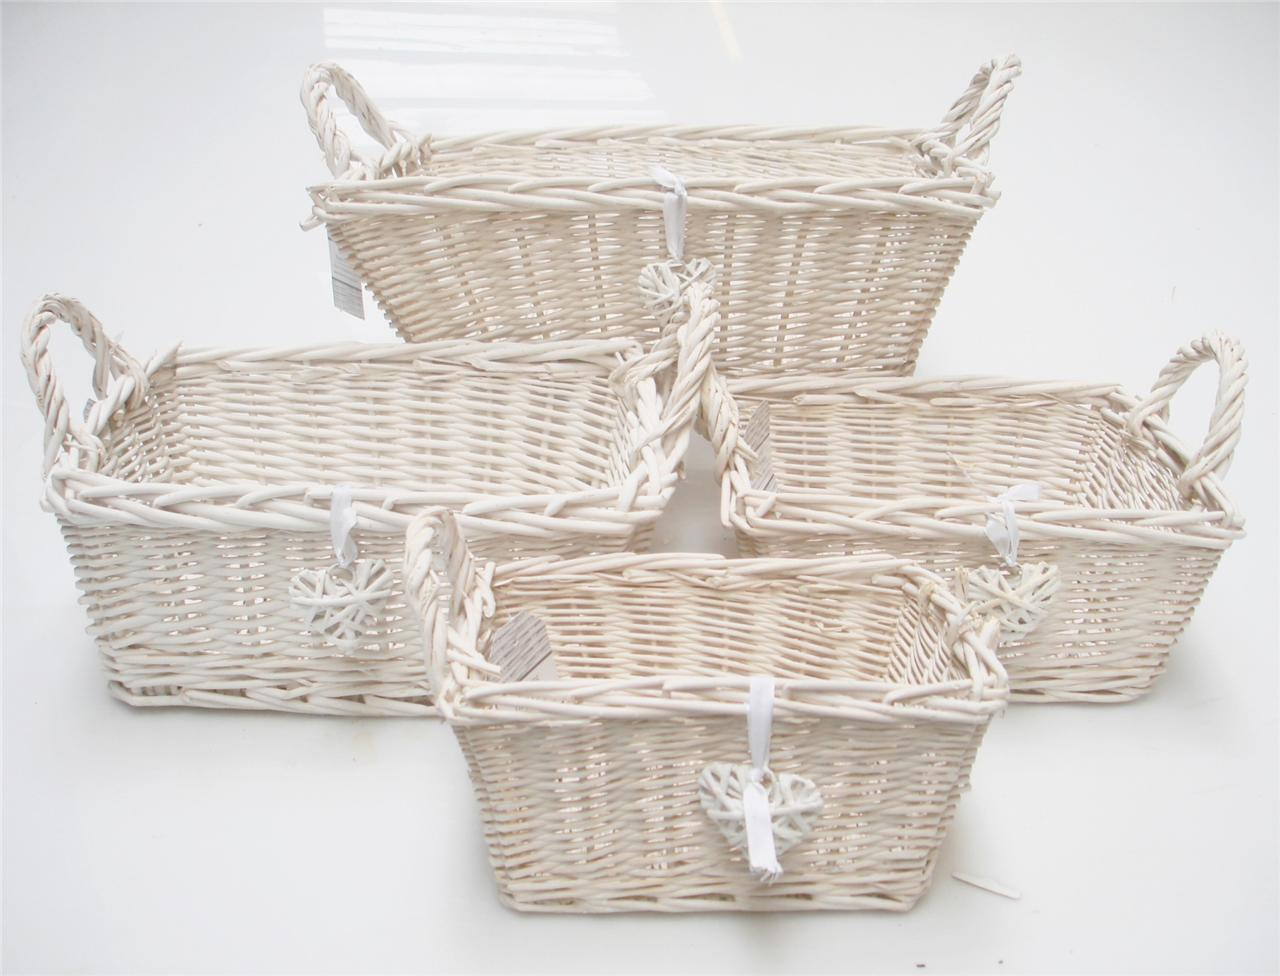 rectangle white french shabby chic wicker kitchen crafts bathroom storage basket ebay. Black Bedroom Furniture Sets. Home Design Ideas